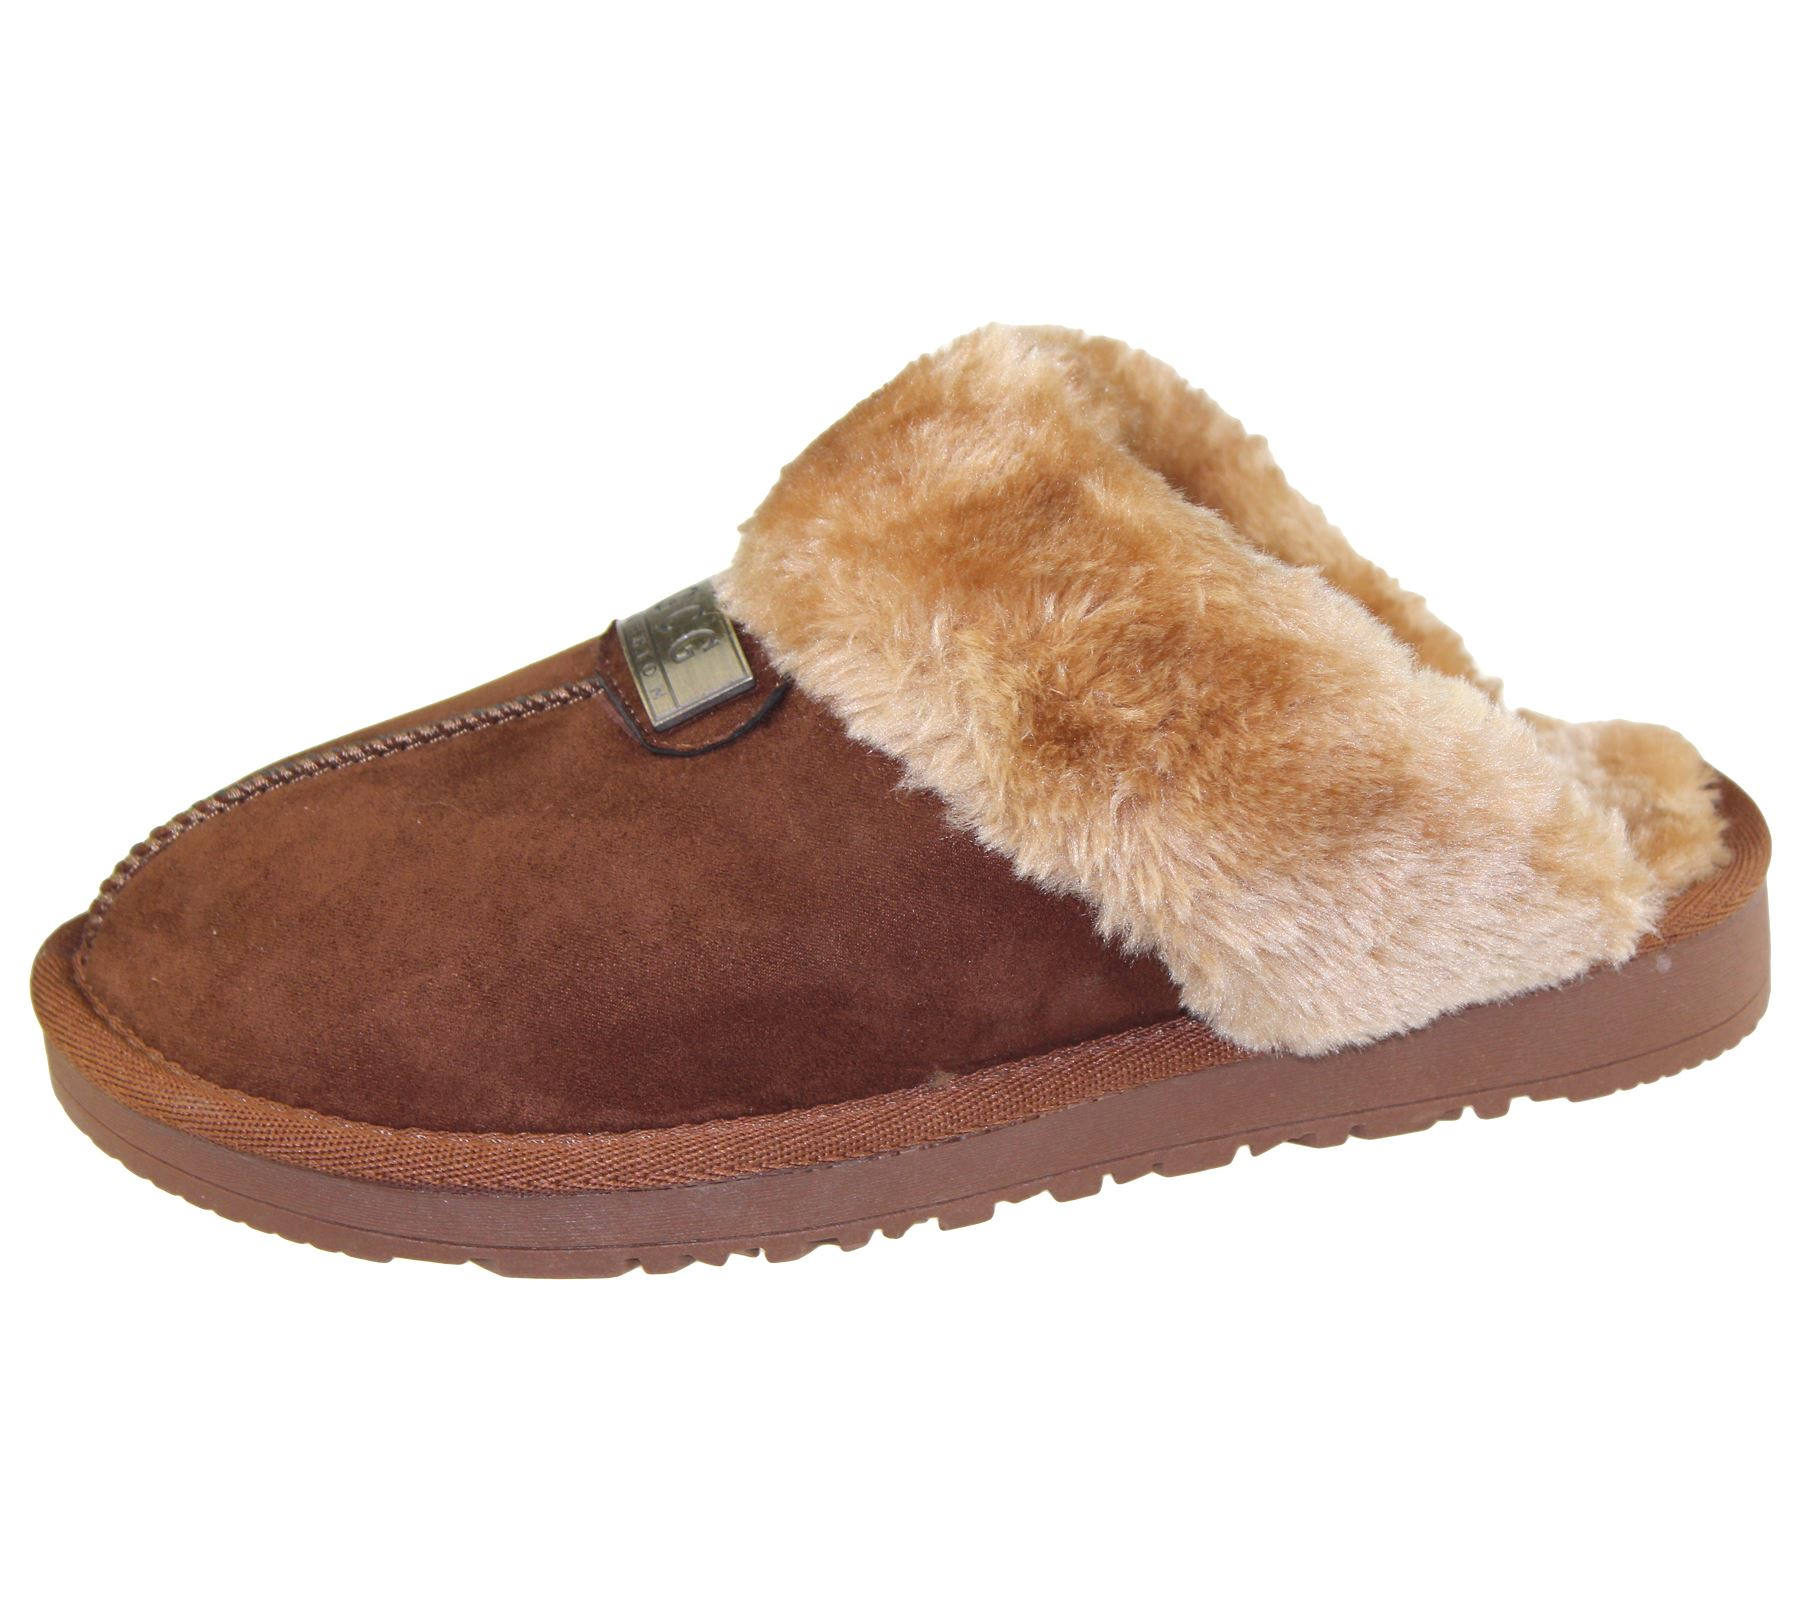 Womens-Fur-Lined-Slippers-Ladies-Mules-Non-Slip-Rubber-Sole-Shoes miniatura 16